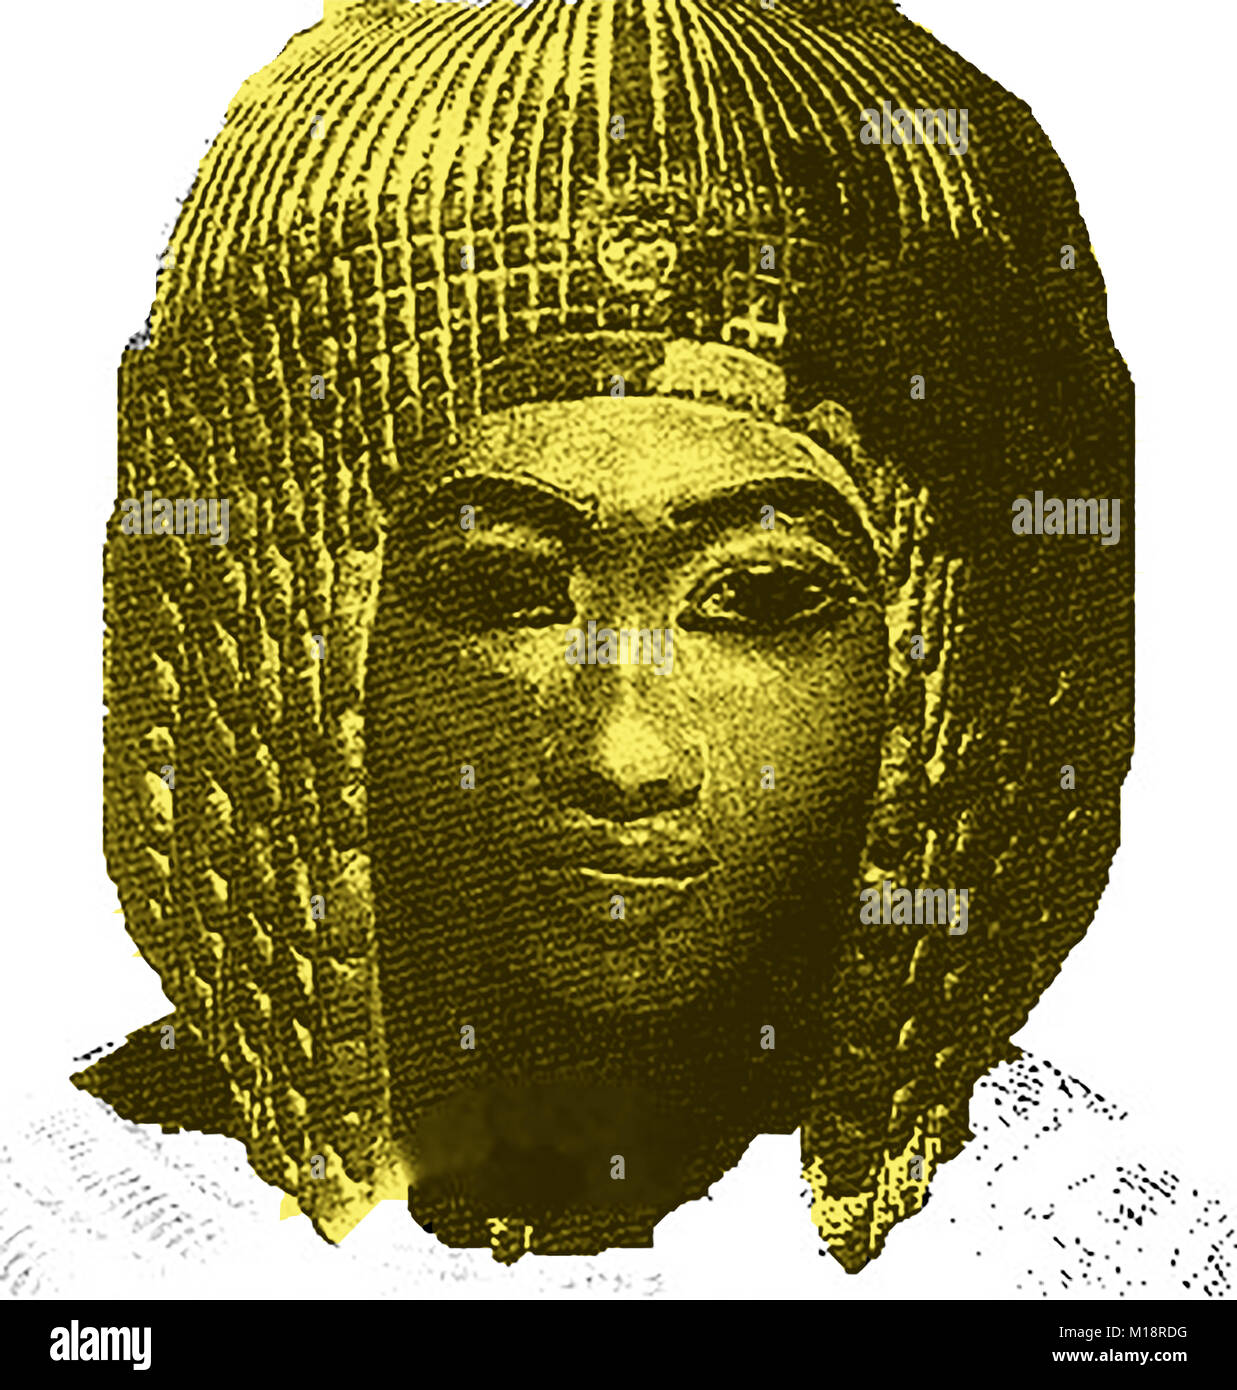 Egyptology, Magic and Mysticism   - MERY AMON, (Amarna II)  the supposed 'lost' Queen of Egyptian pharaoh - Stock Image